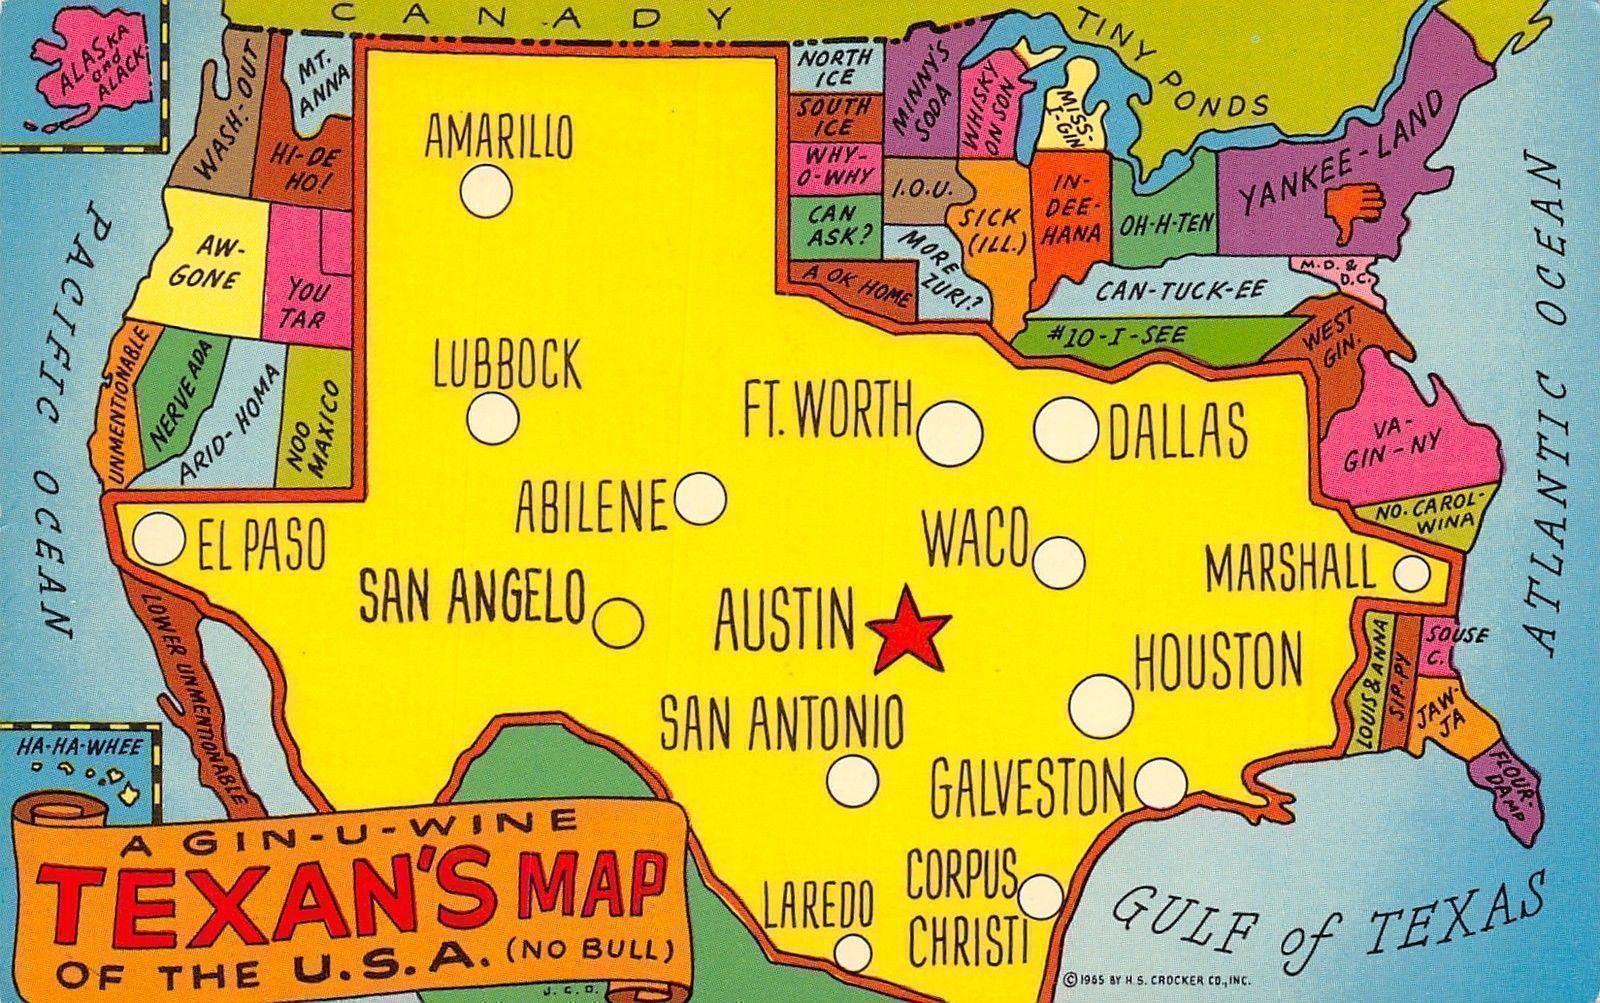 Texas~Gin-U-Wine Texan's United States Map Postcard~TX ... on texas map of monterey, texas indian map, texas map of arizona, texas map of dallas, texas county map, texas map of cordova, texas map of fremont, texas world map, texas map of paris, texas europe map, texas space, texas us map,